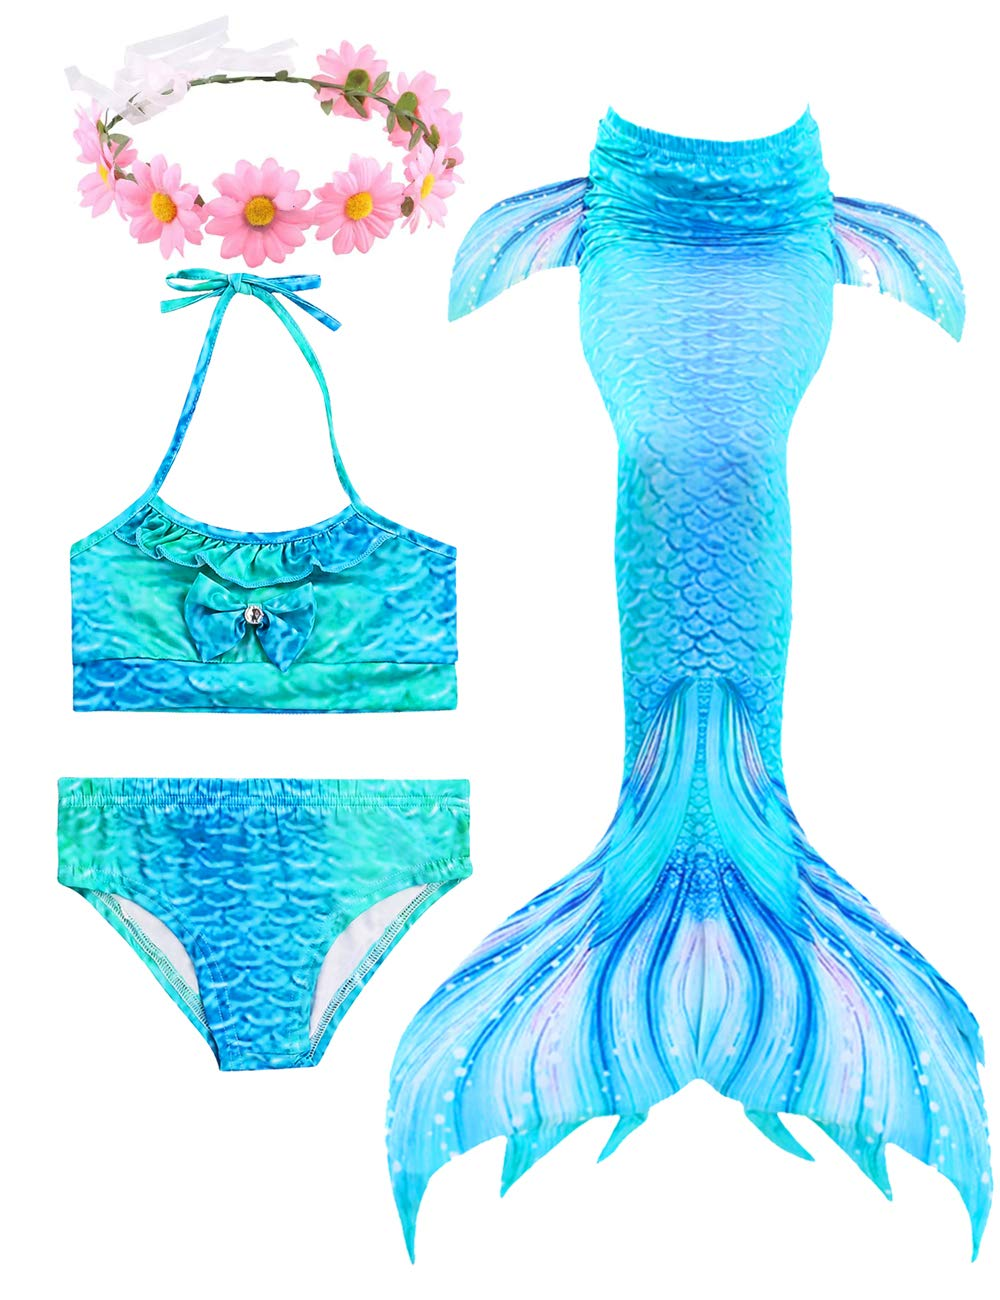 3 Pcs Girls Swimsuit Bikini Mermaid Tails for Swimming Can Add Monofin Prime Deals Summer (XX-Large 11-12Y 150, Blue)